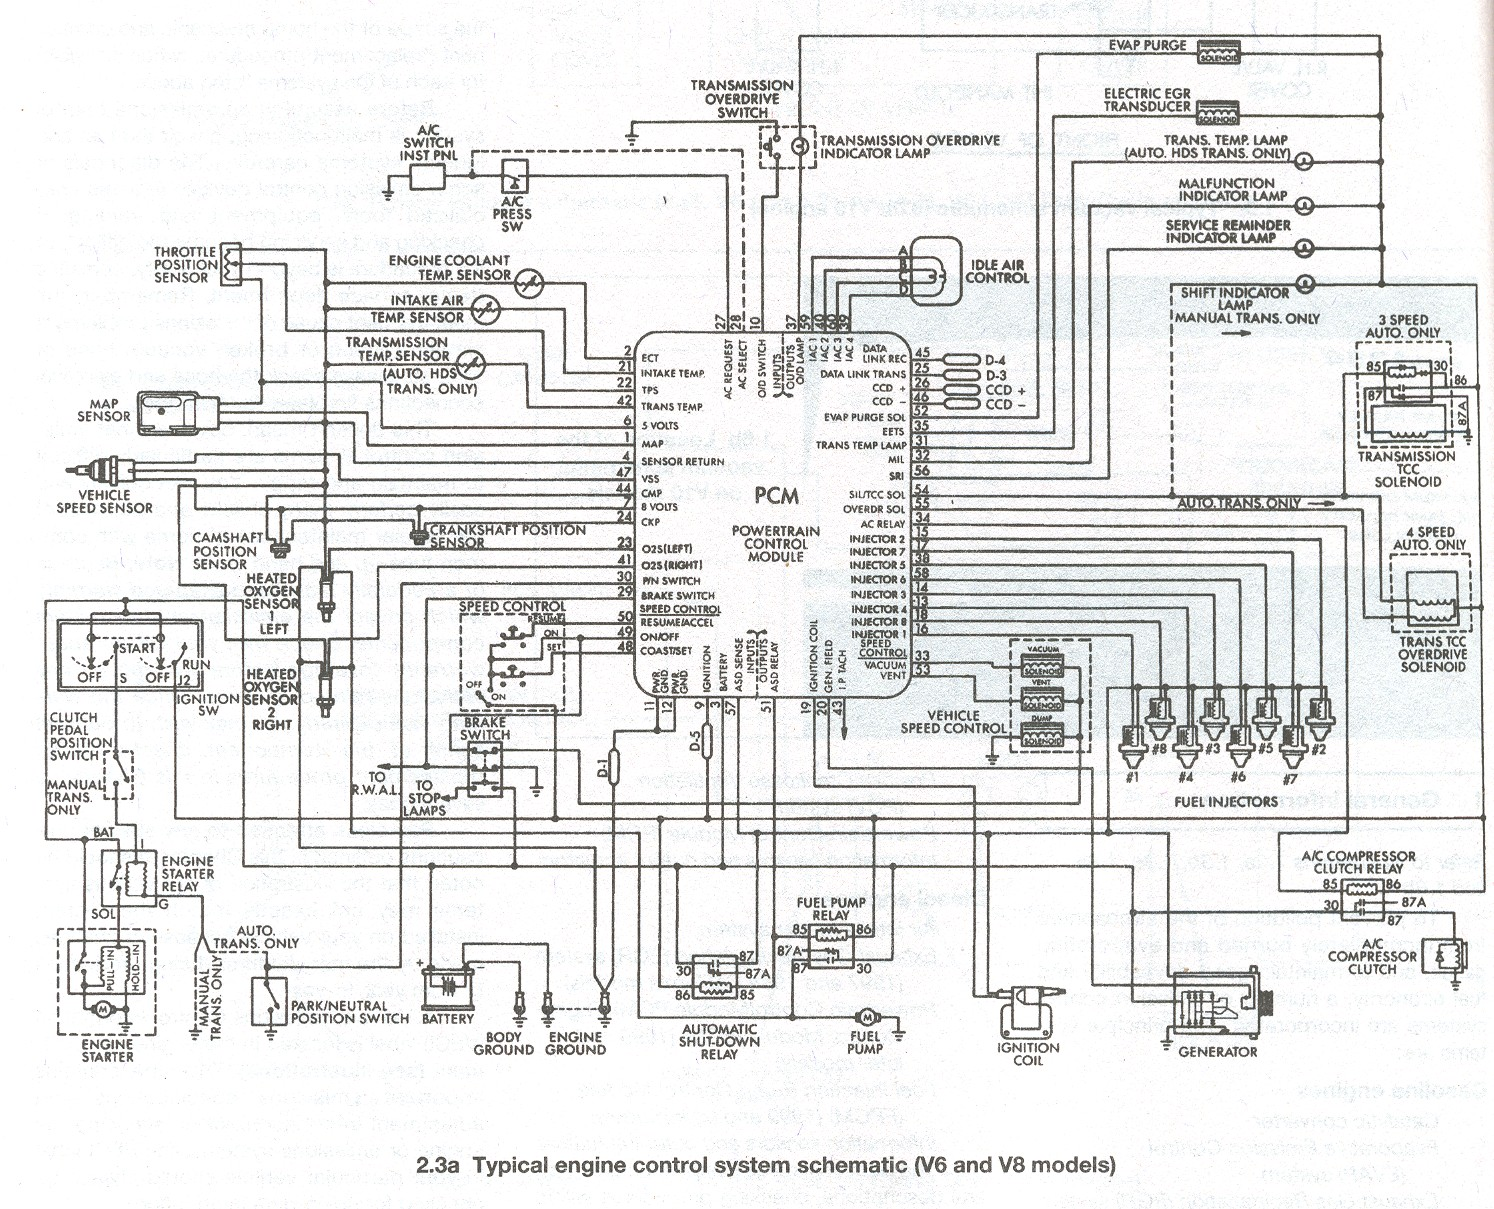 1970 plymouth road runner wiring diagram | wiring diagram 1973 satellite wiring diagram  wiring diagram - autoscout24